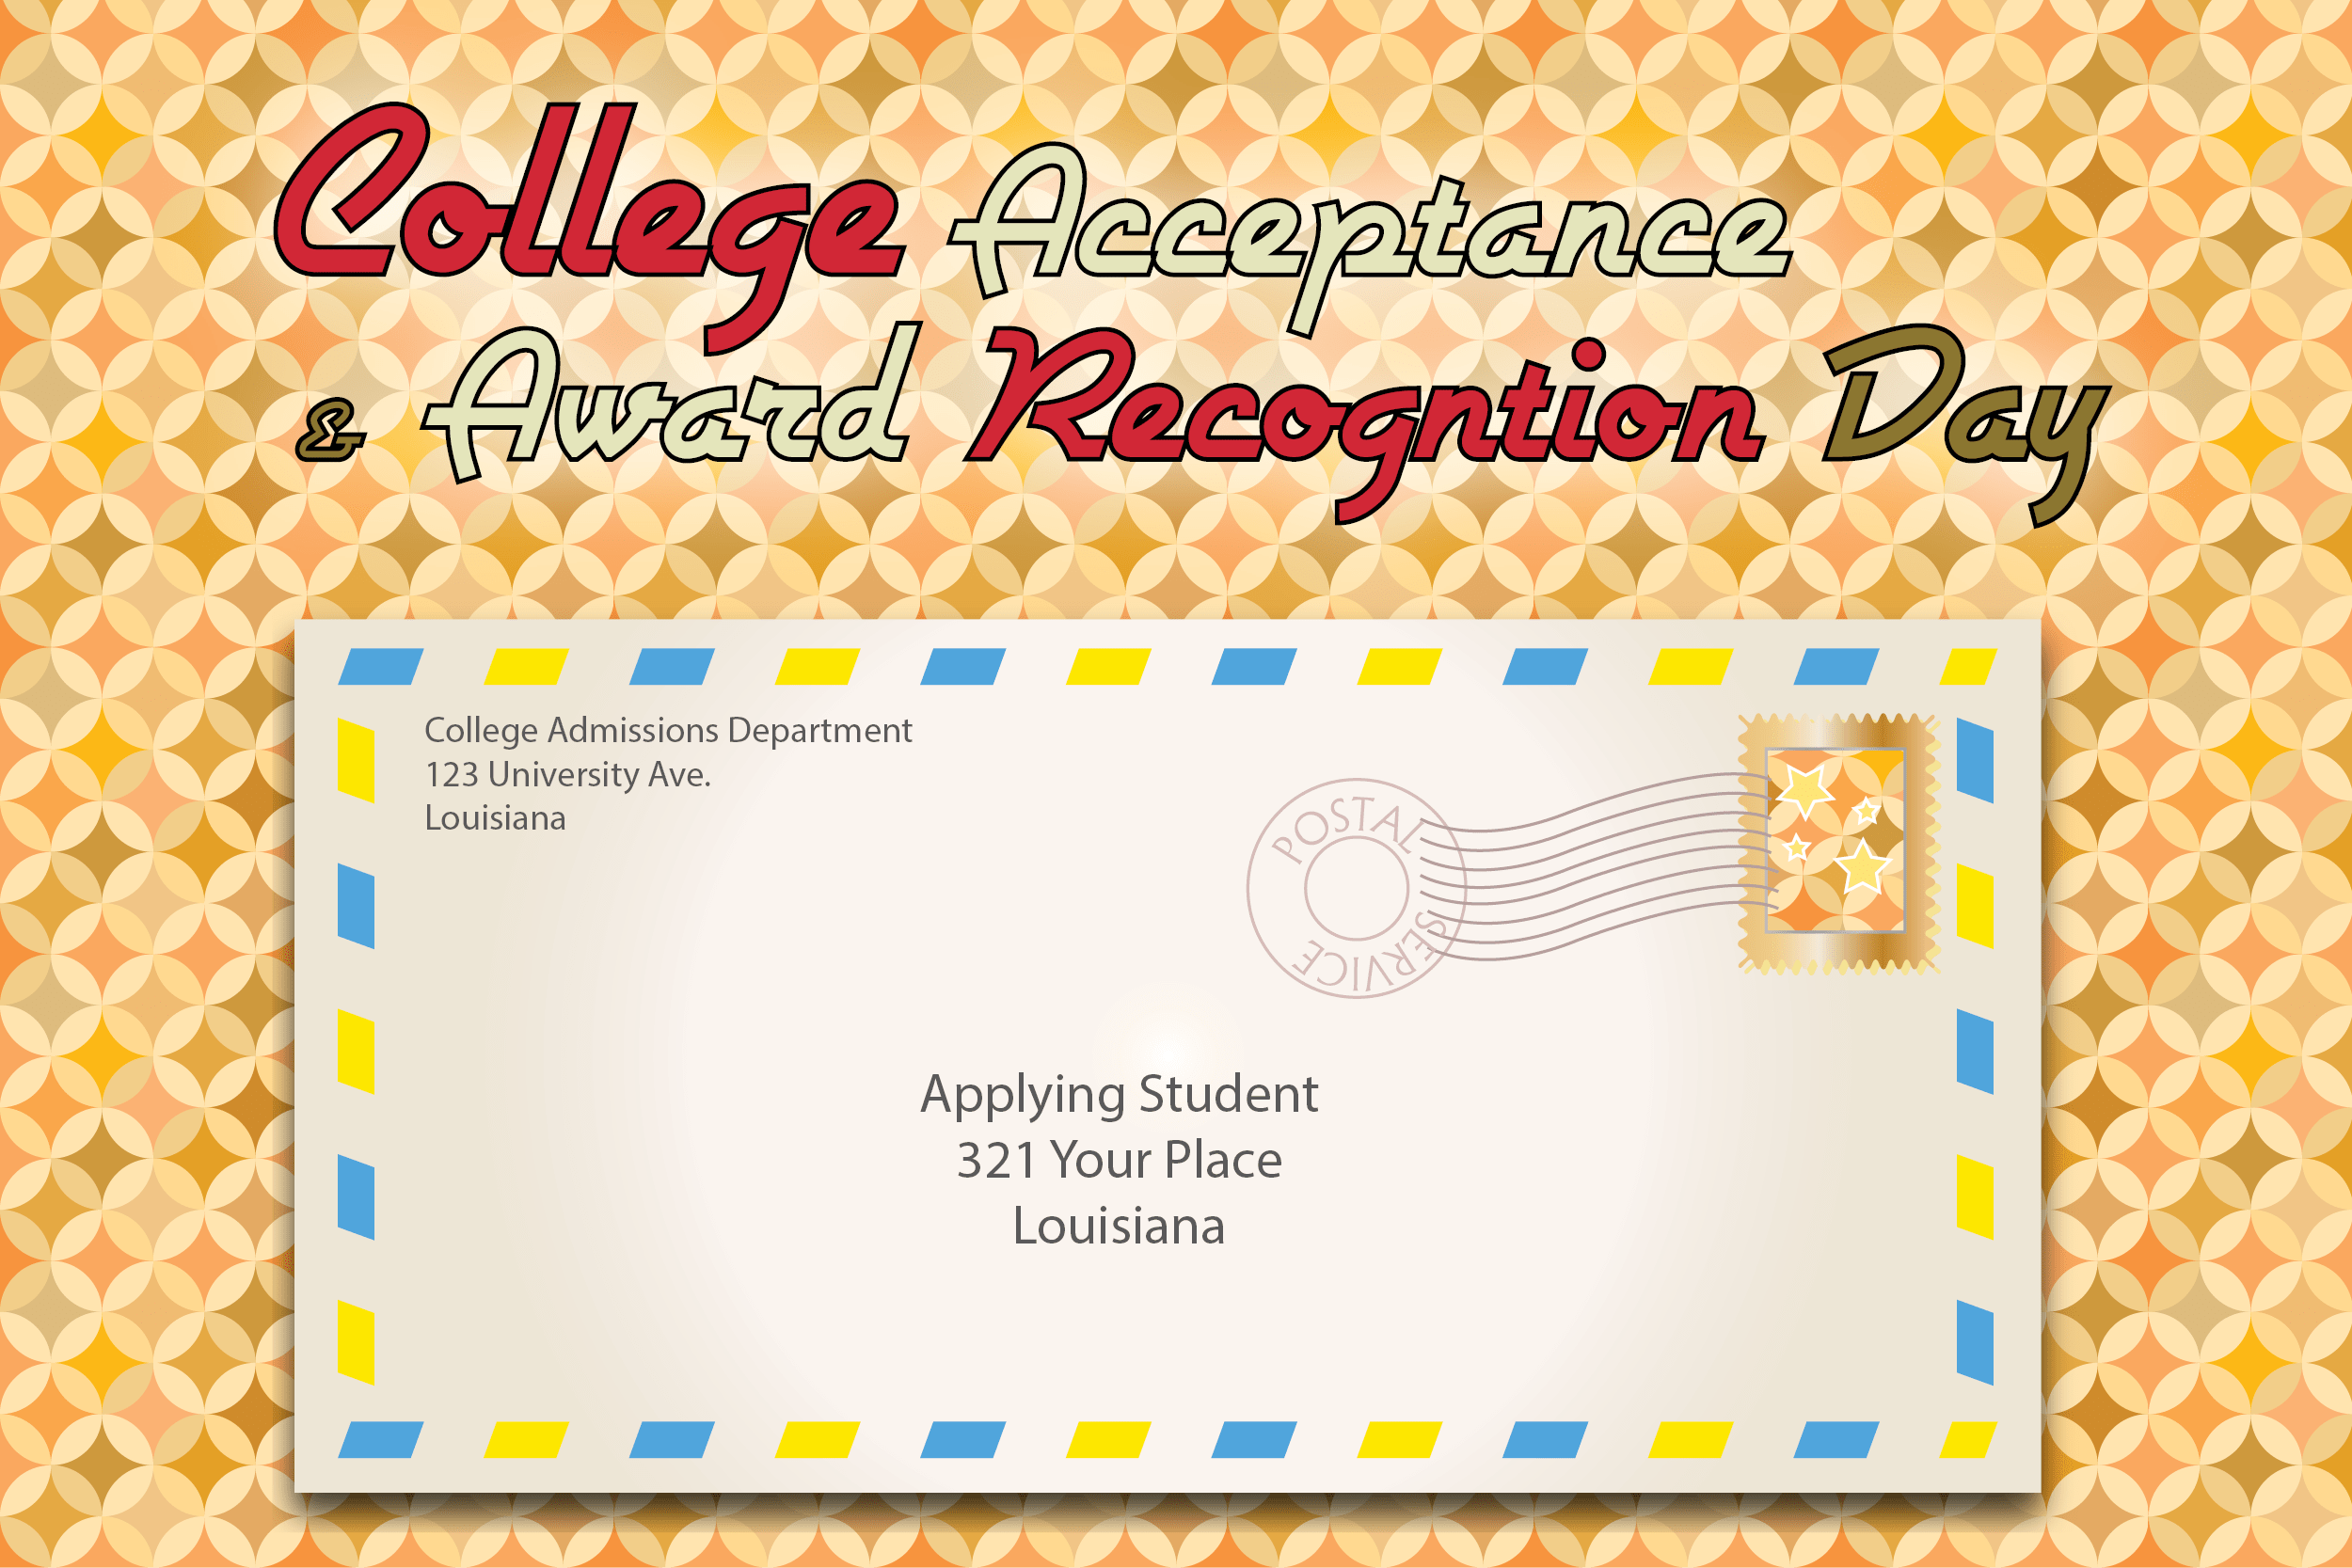 College Acceptance Day Page